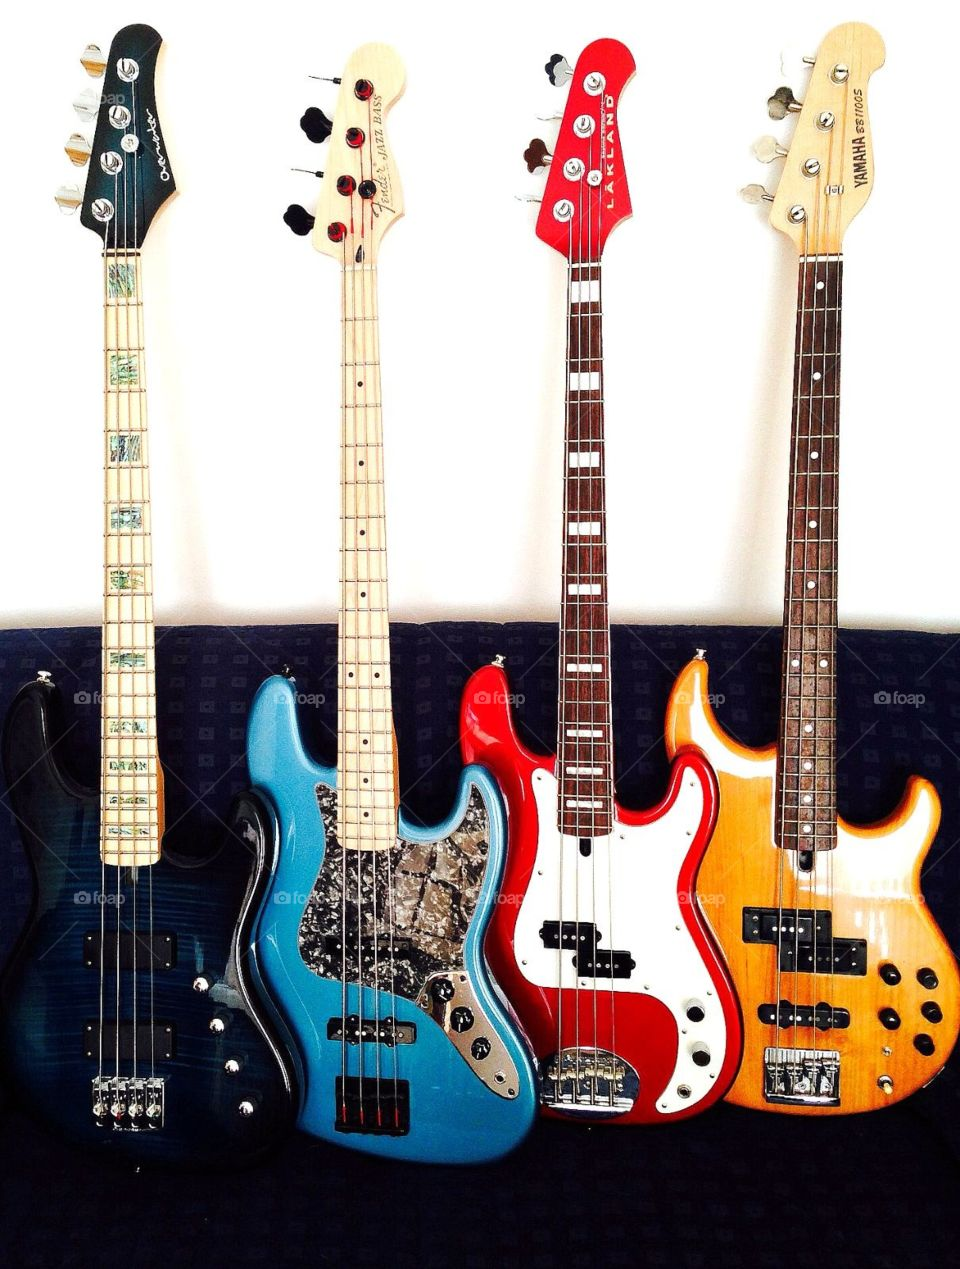 My Bass Family. 4 top basses in a row